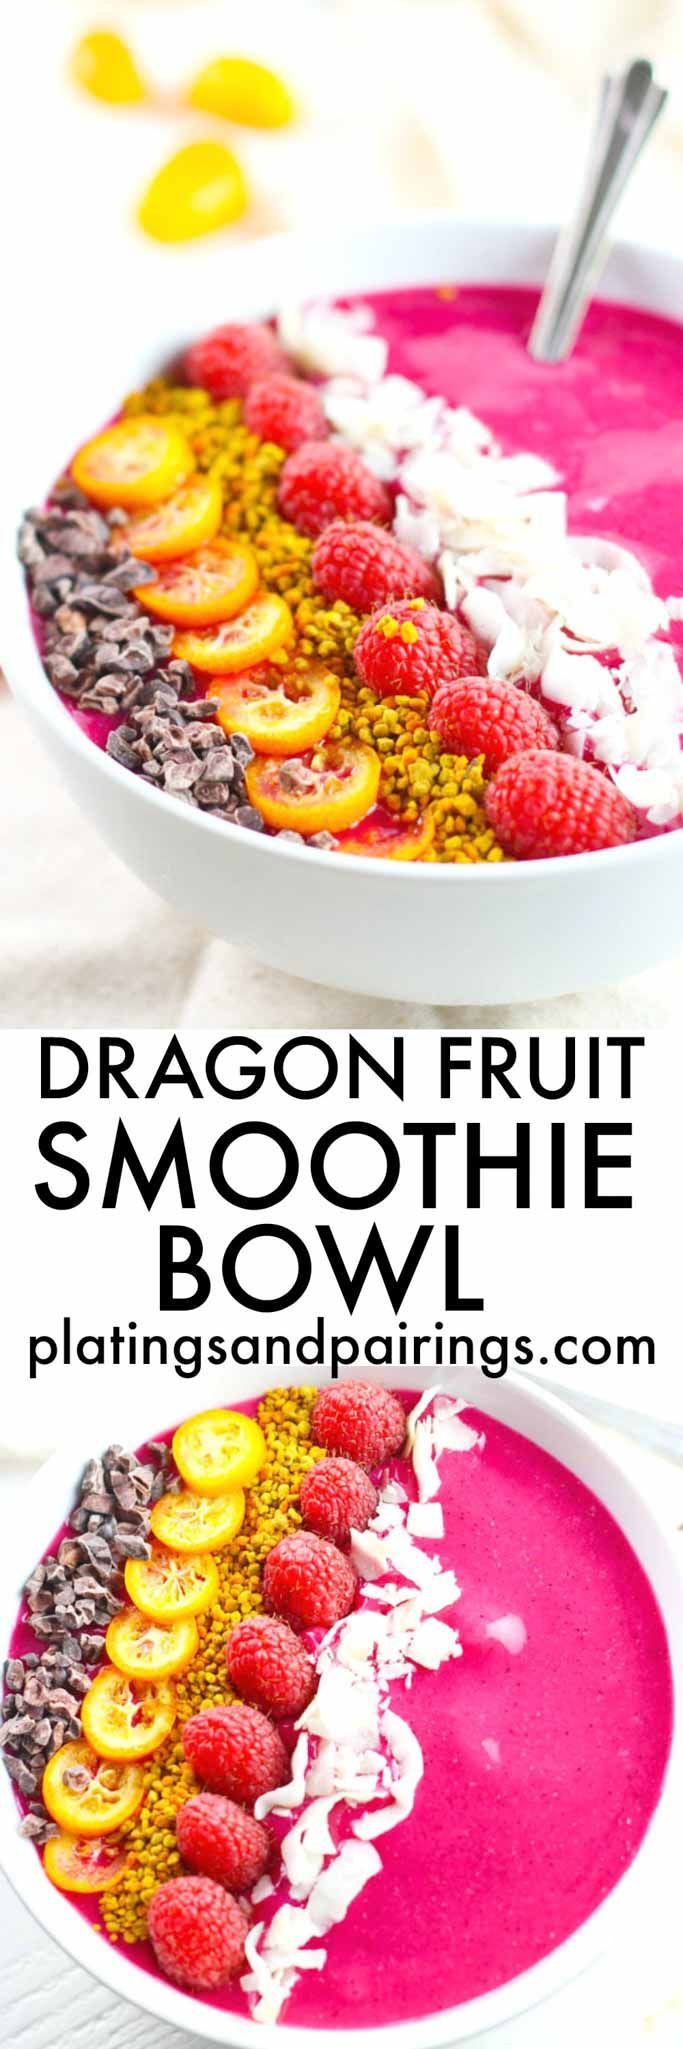 Breakfast never looked so good! This vibrant Dragon Fruit (Pitaya) Smoothie Bowl is a perfect, healthy way to start the day. | platingsandpairings.com